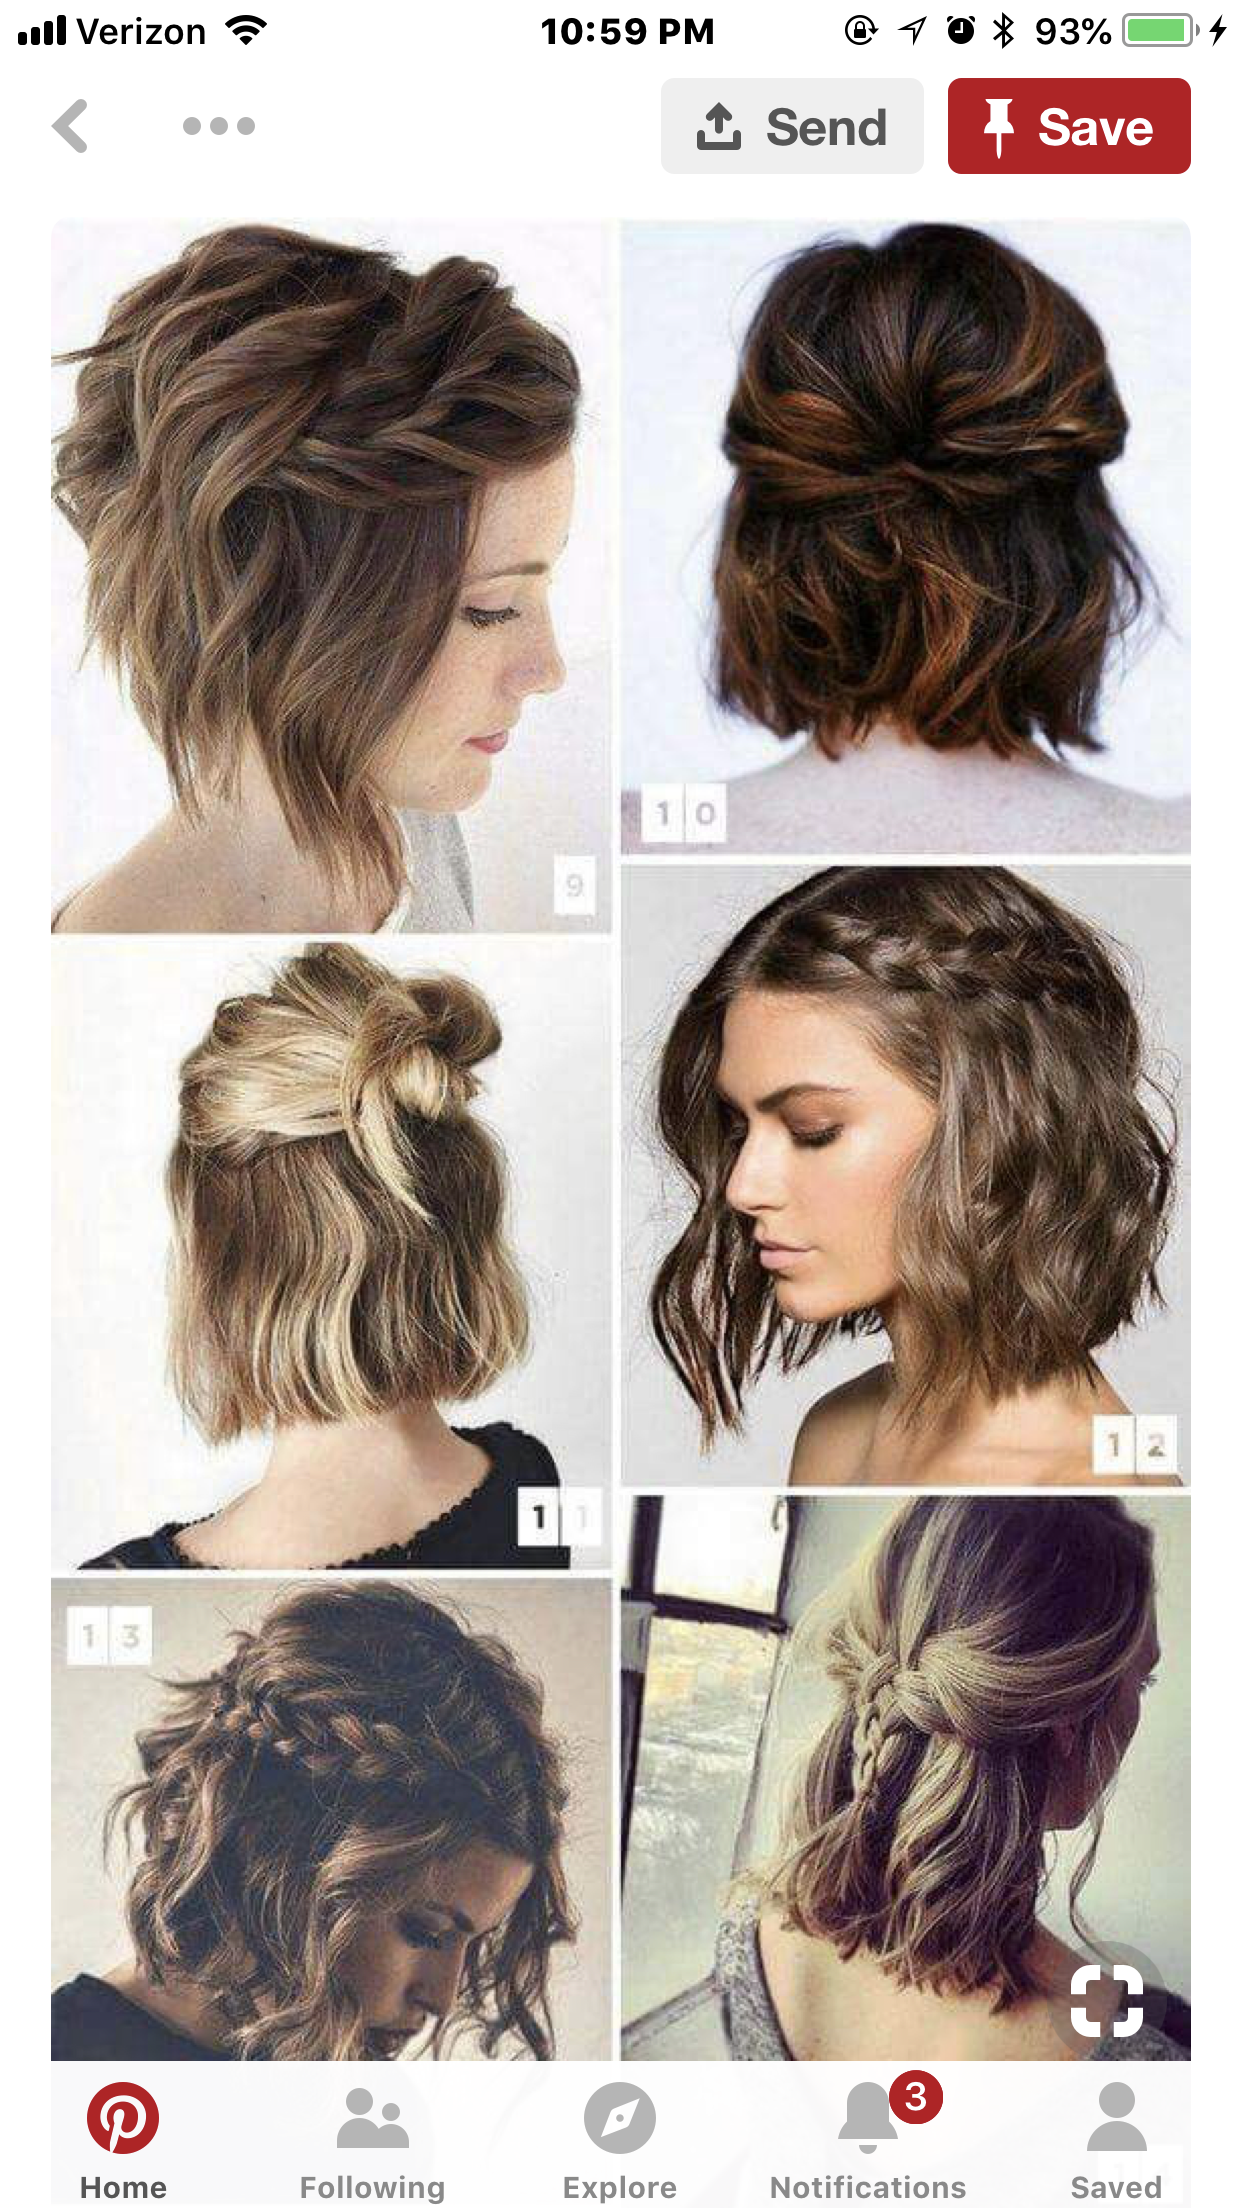 Short Hair Hairstyles In 2019 Braids For Short Hair Braids For Short Hair Long Hair Styles Hair Styles